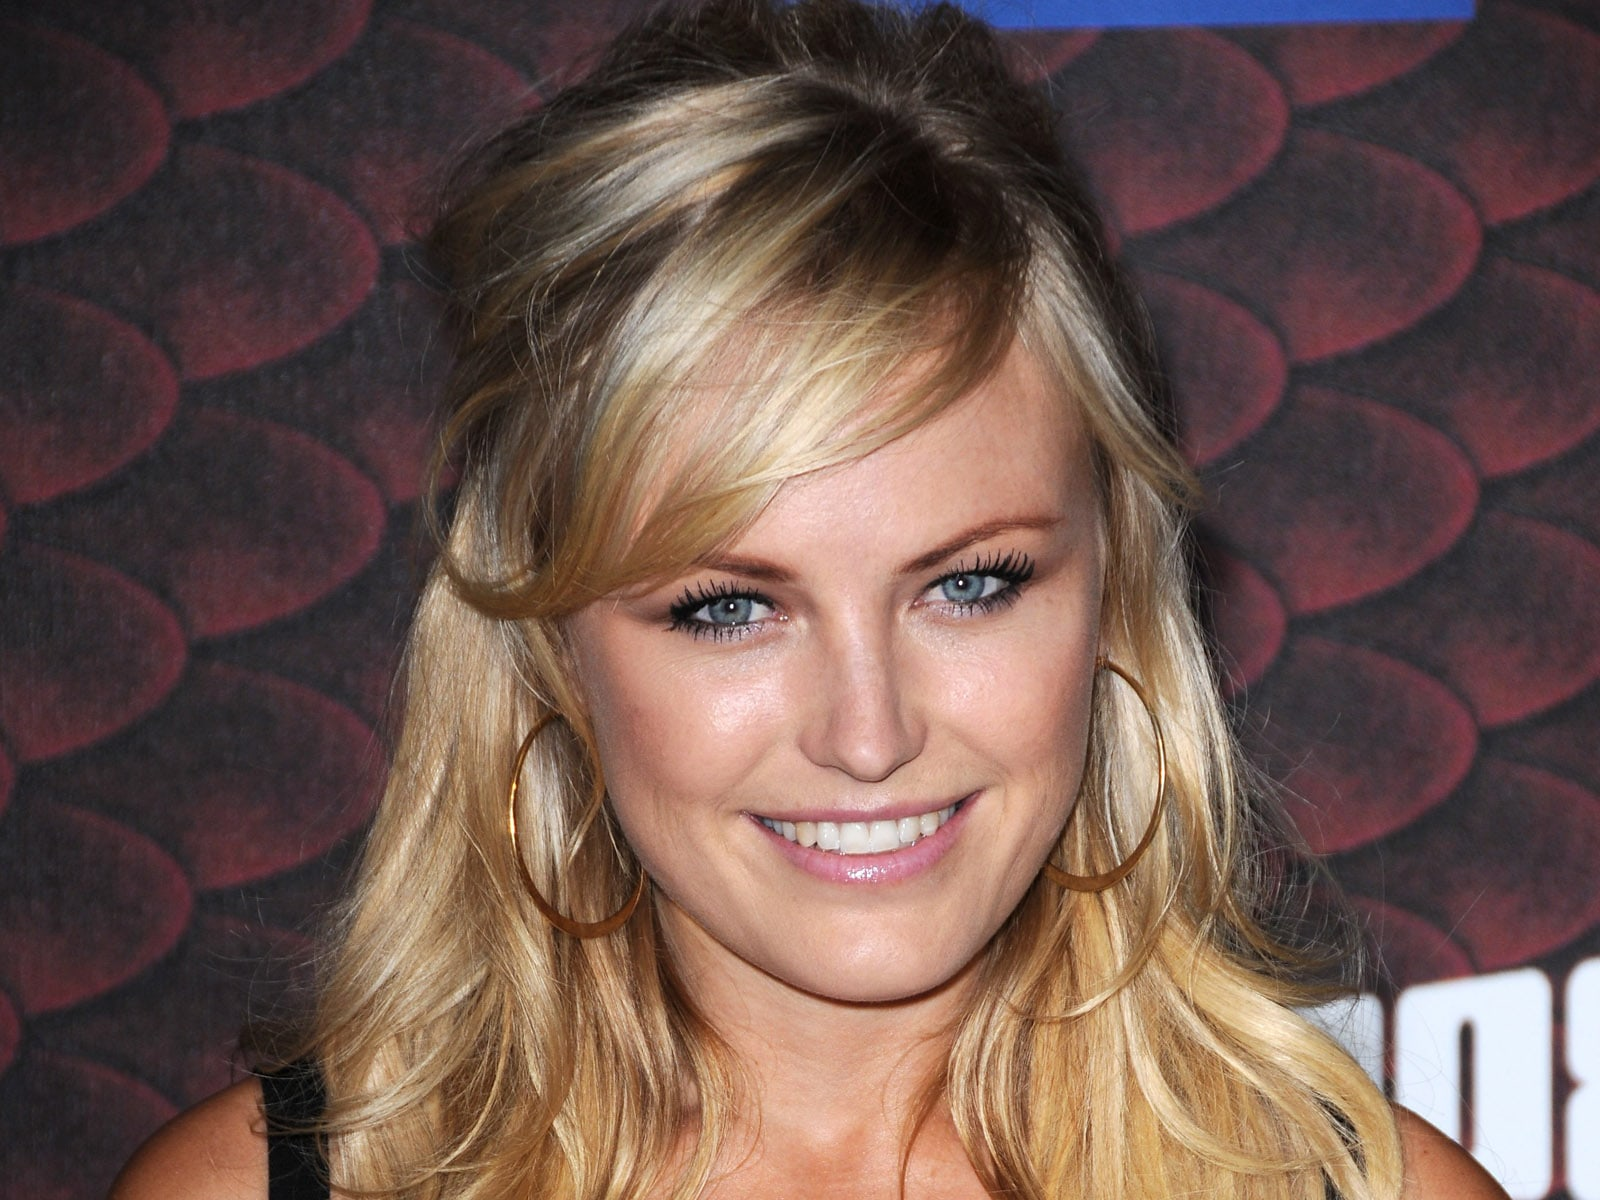 Malin Akerman Full hd wallpapers